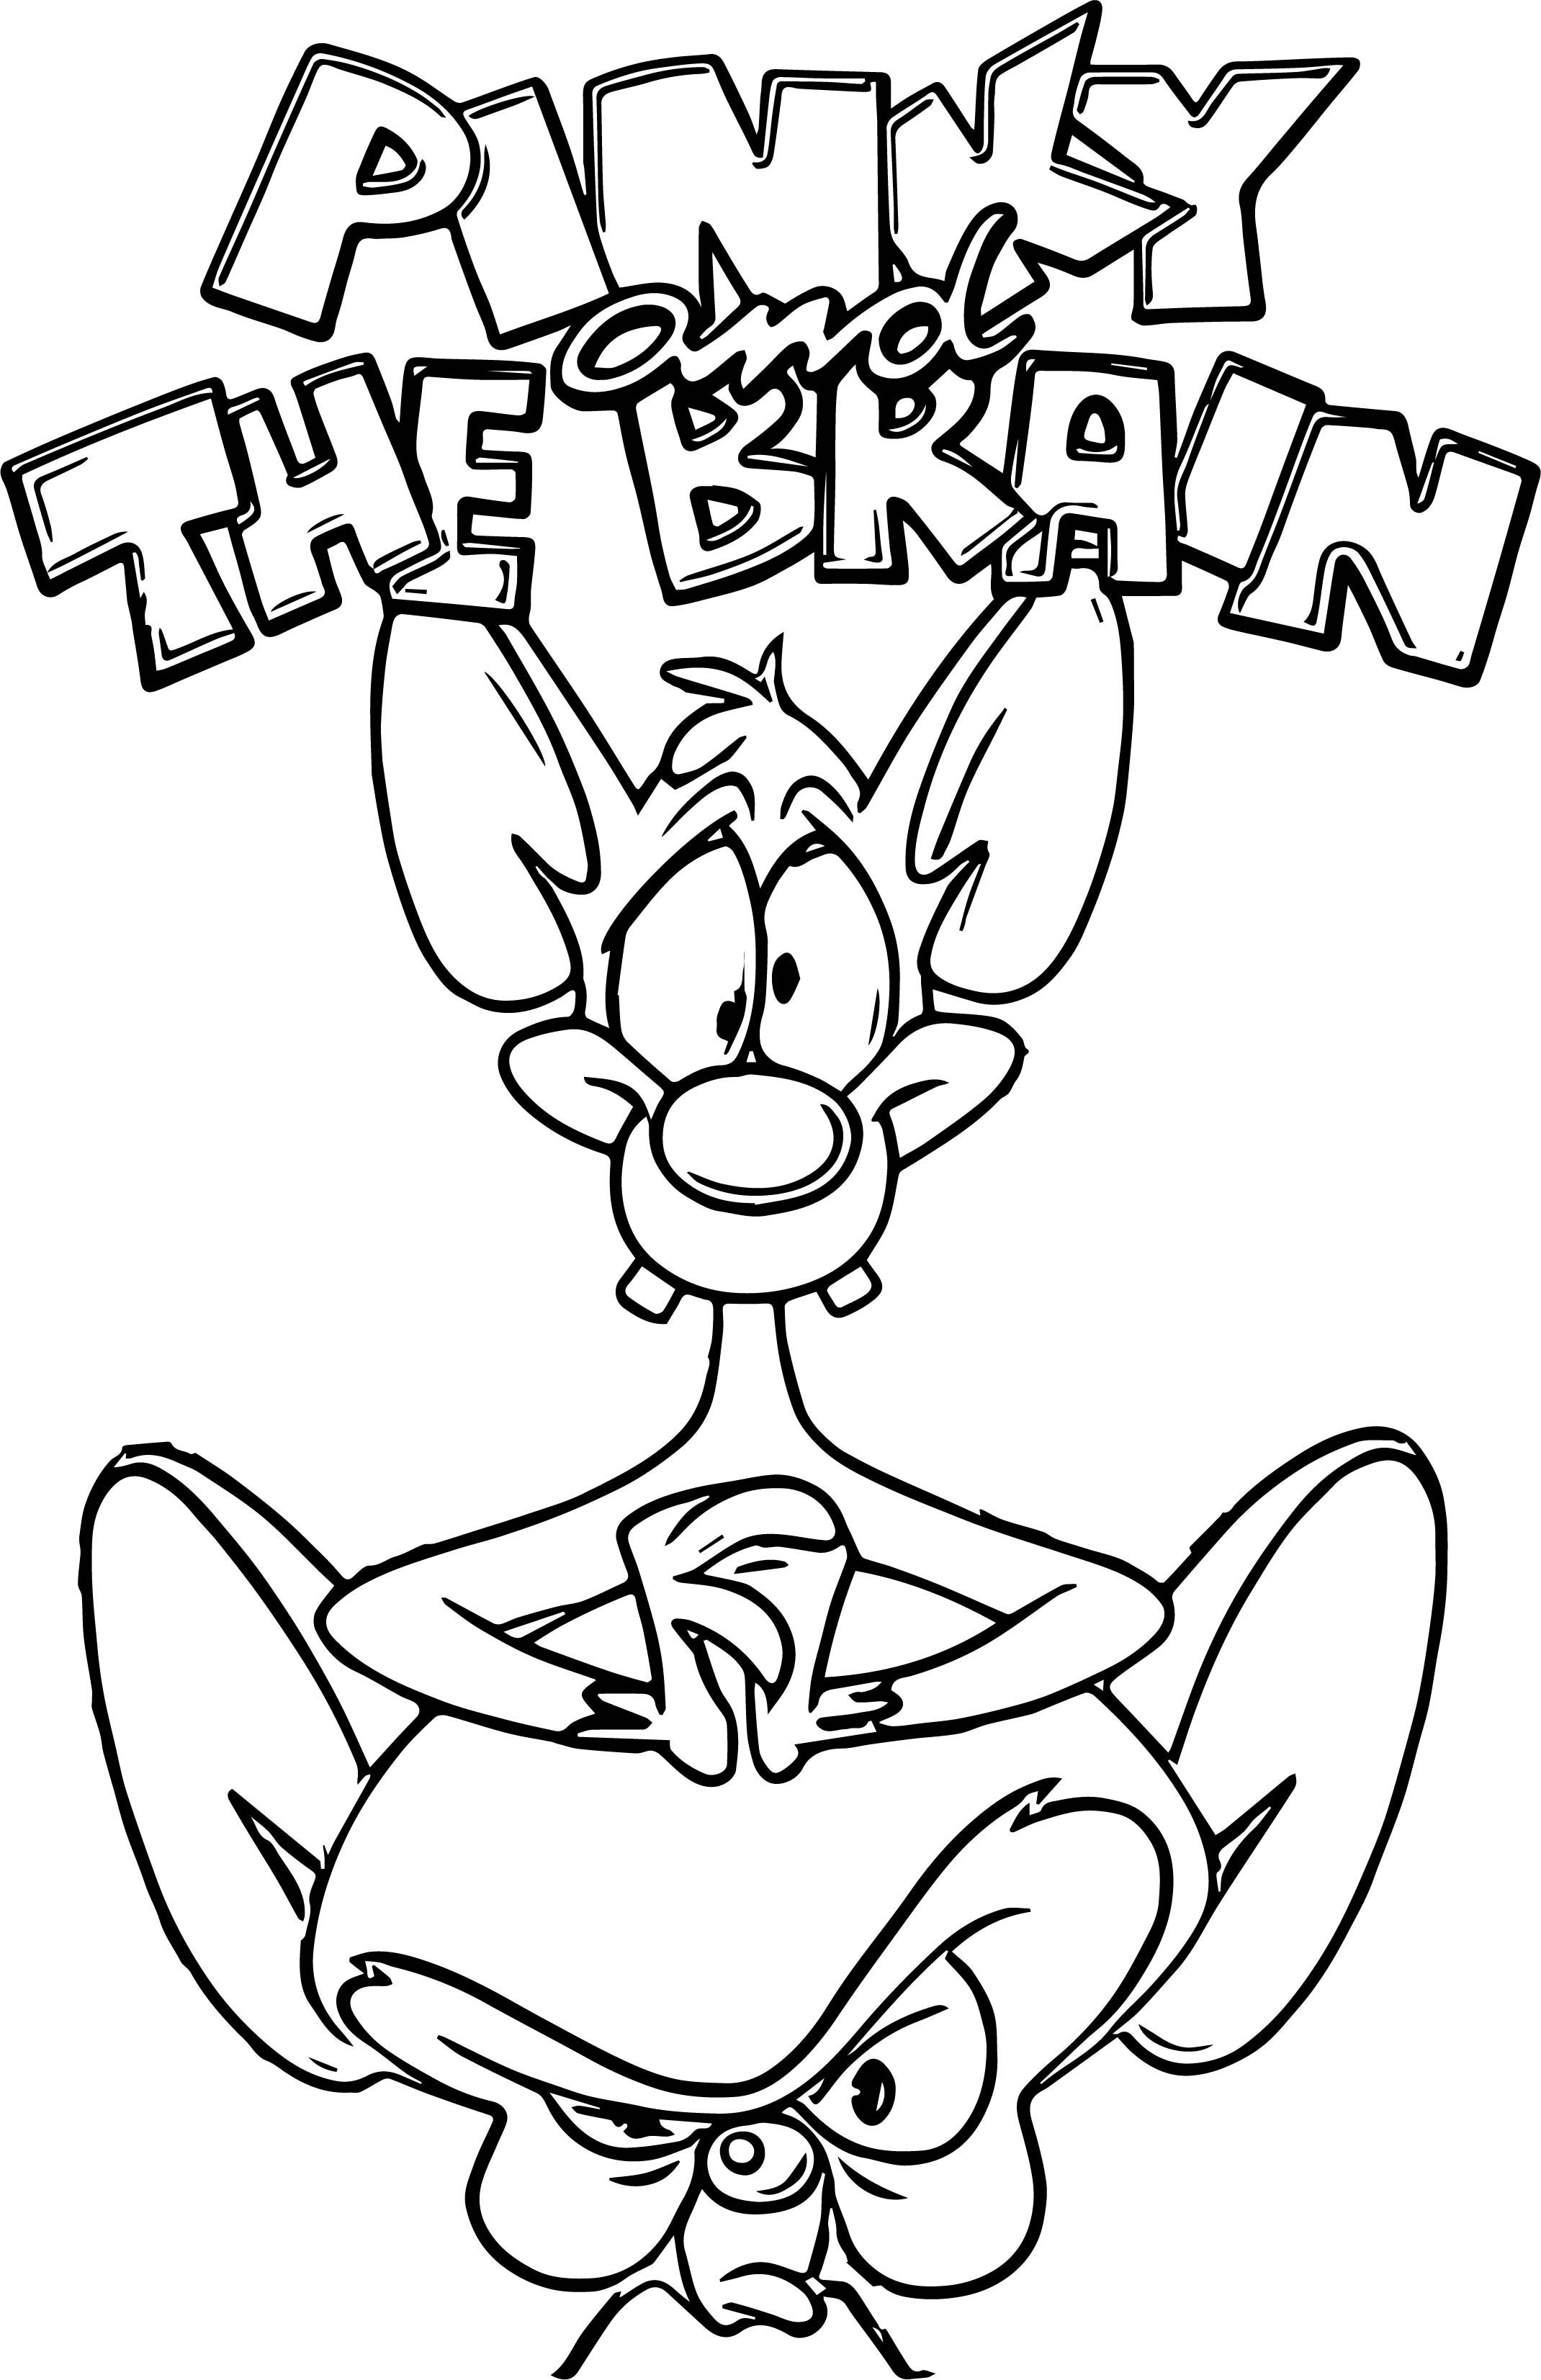 Pinky And The Brain Coloring Pages Best Coloring Pages For Kids In 2021 Cartoon Coloring Pages Monster Coloring Pages Disney Art Drawings